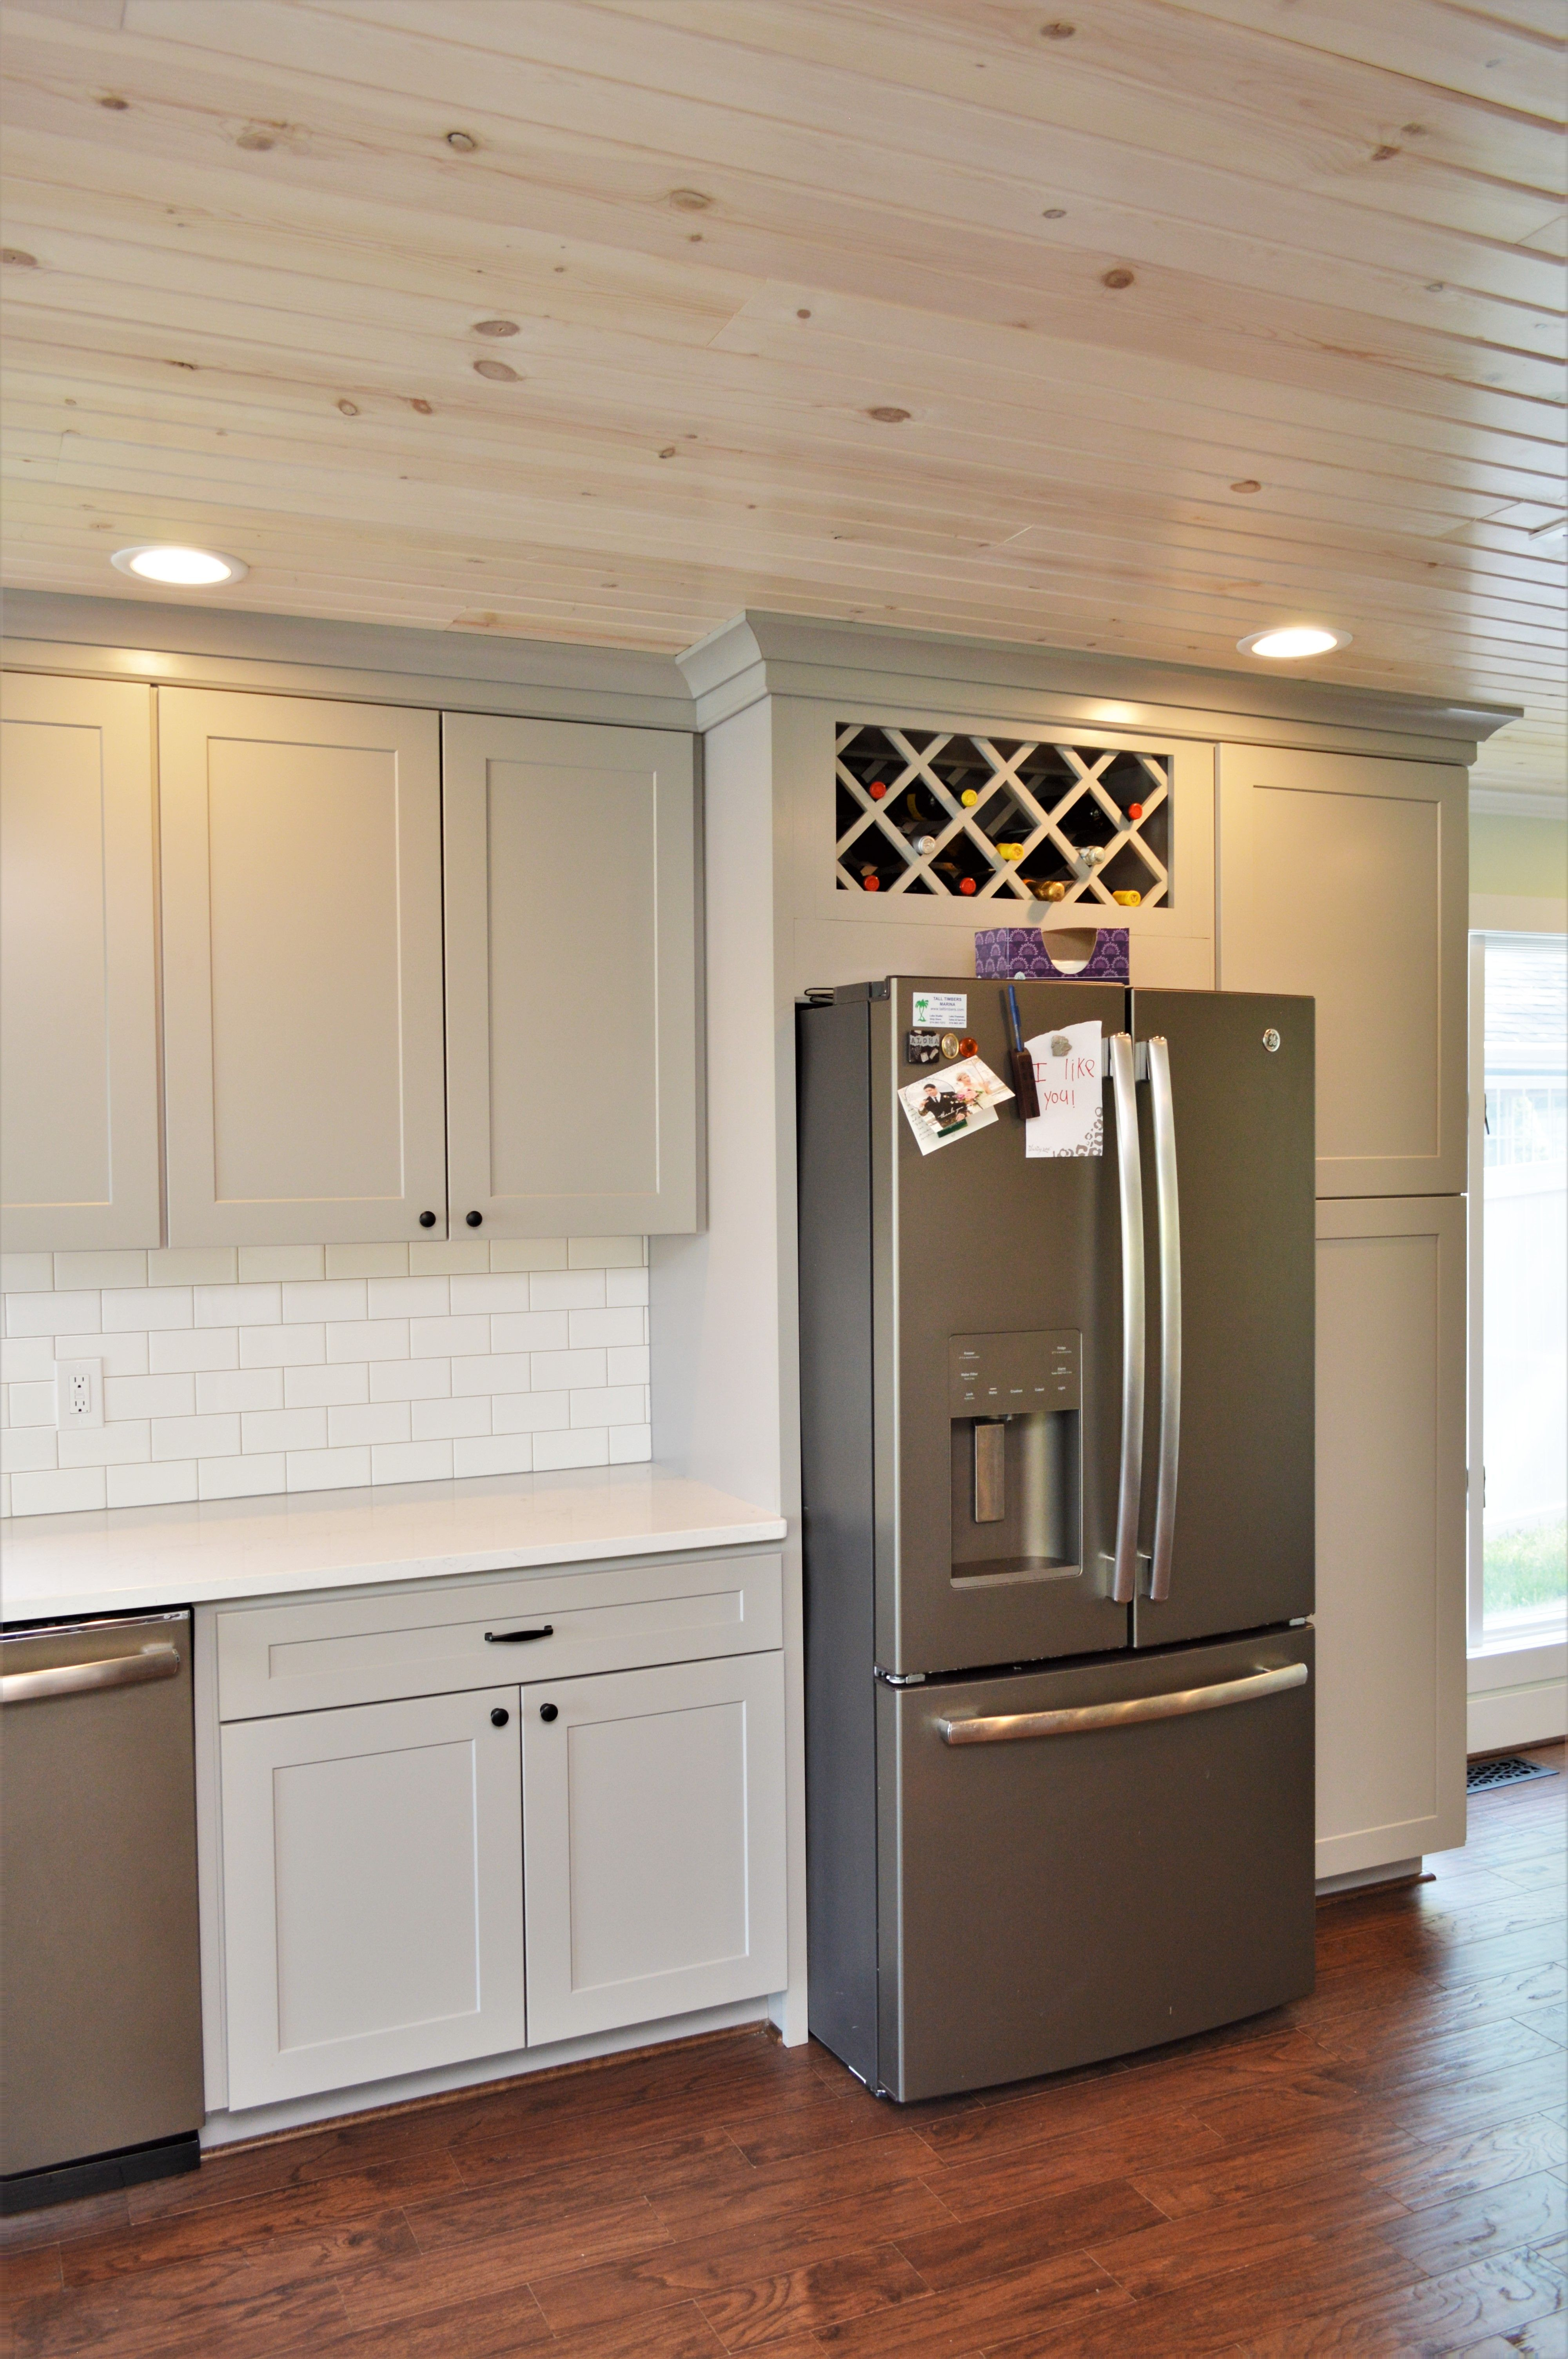 Baileytown Select Maple Limestone Finish Jamestown Door Style With Images Maple Cabinets Cabinetry Kitchen Appliances